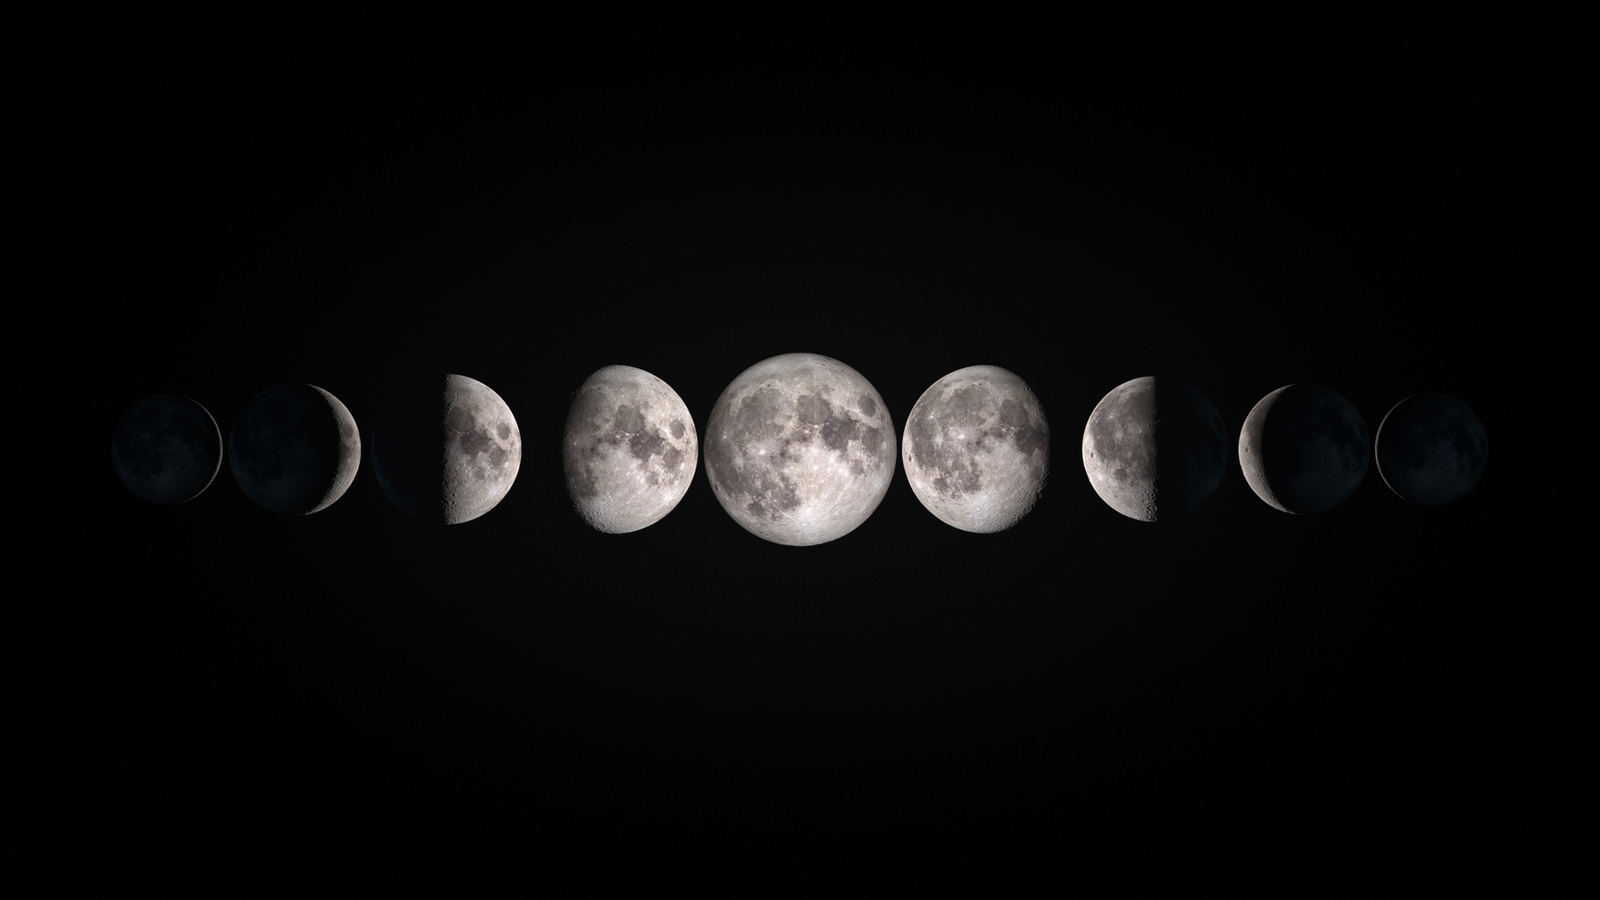 Moon Aesthetic Desktop